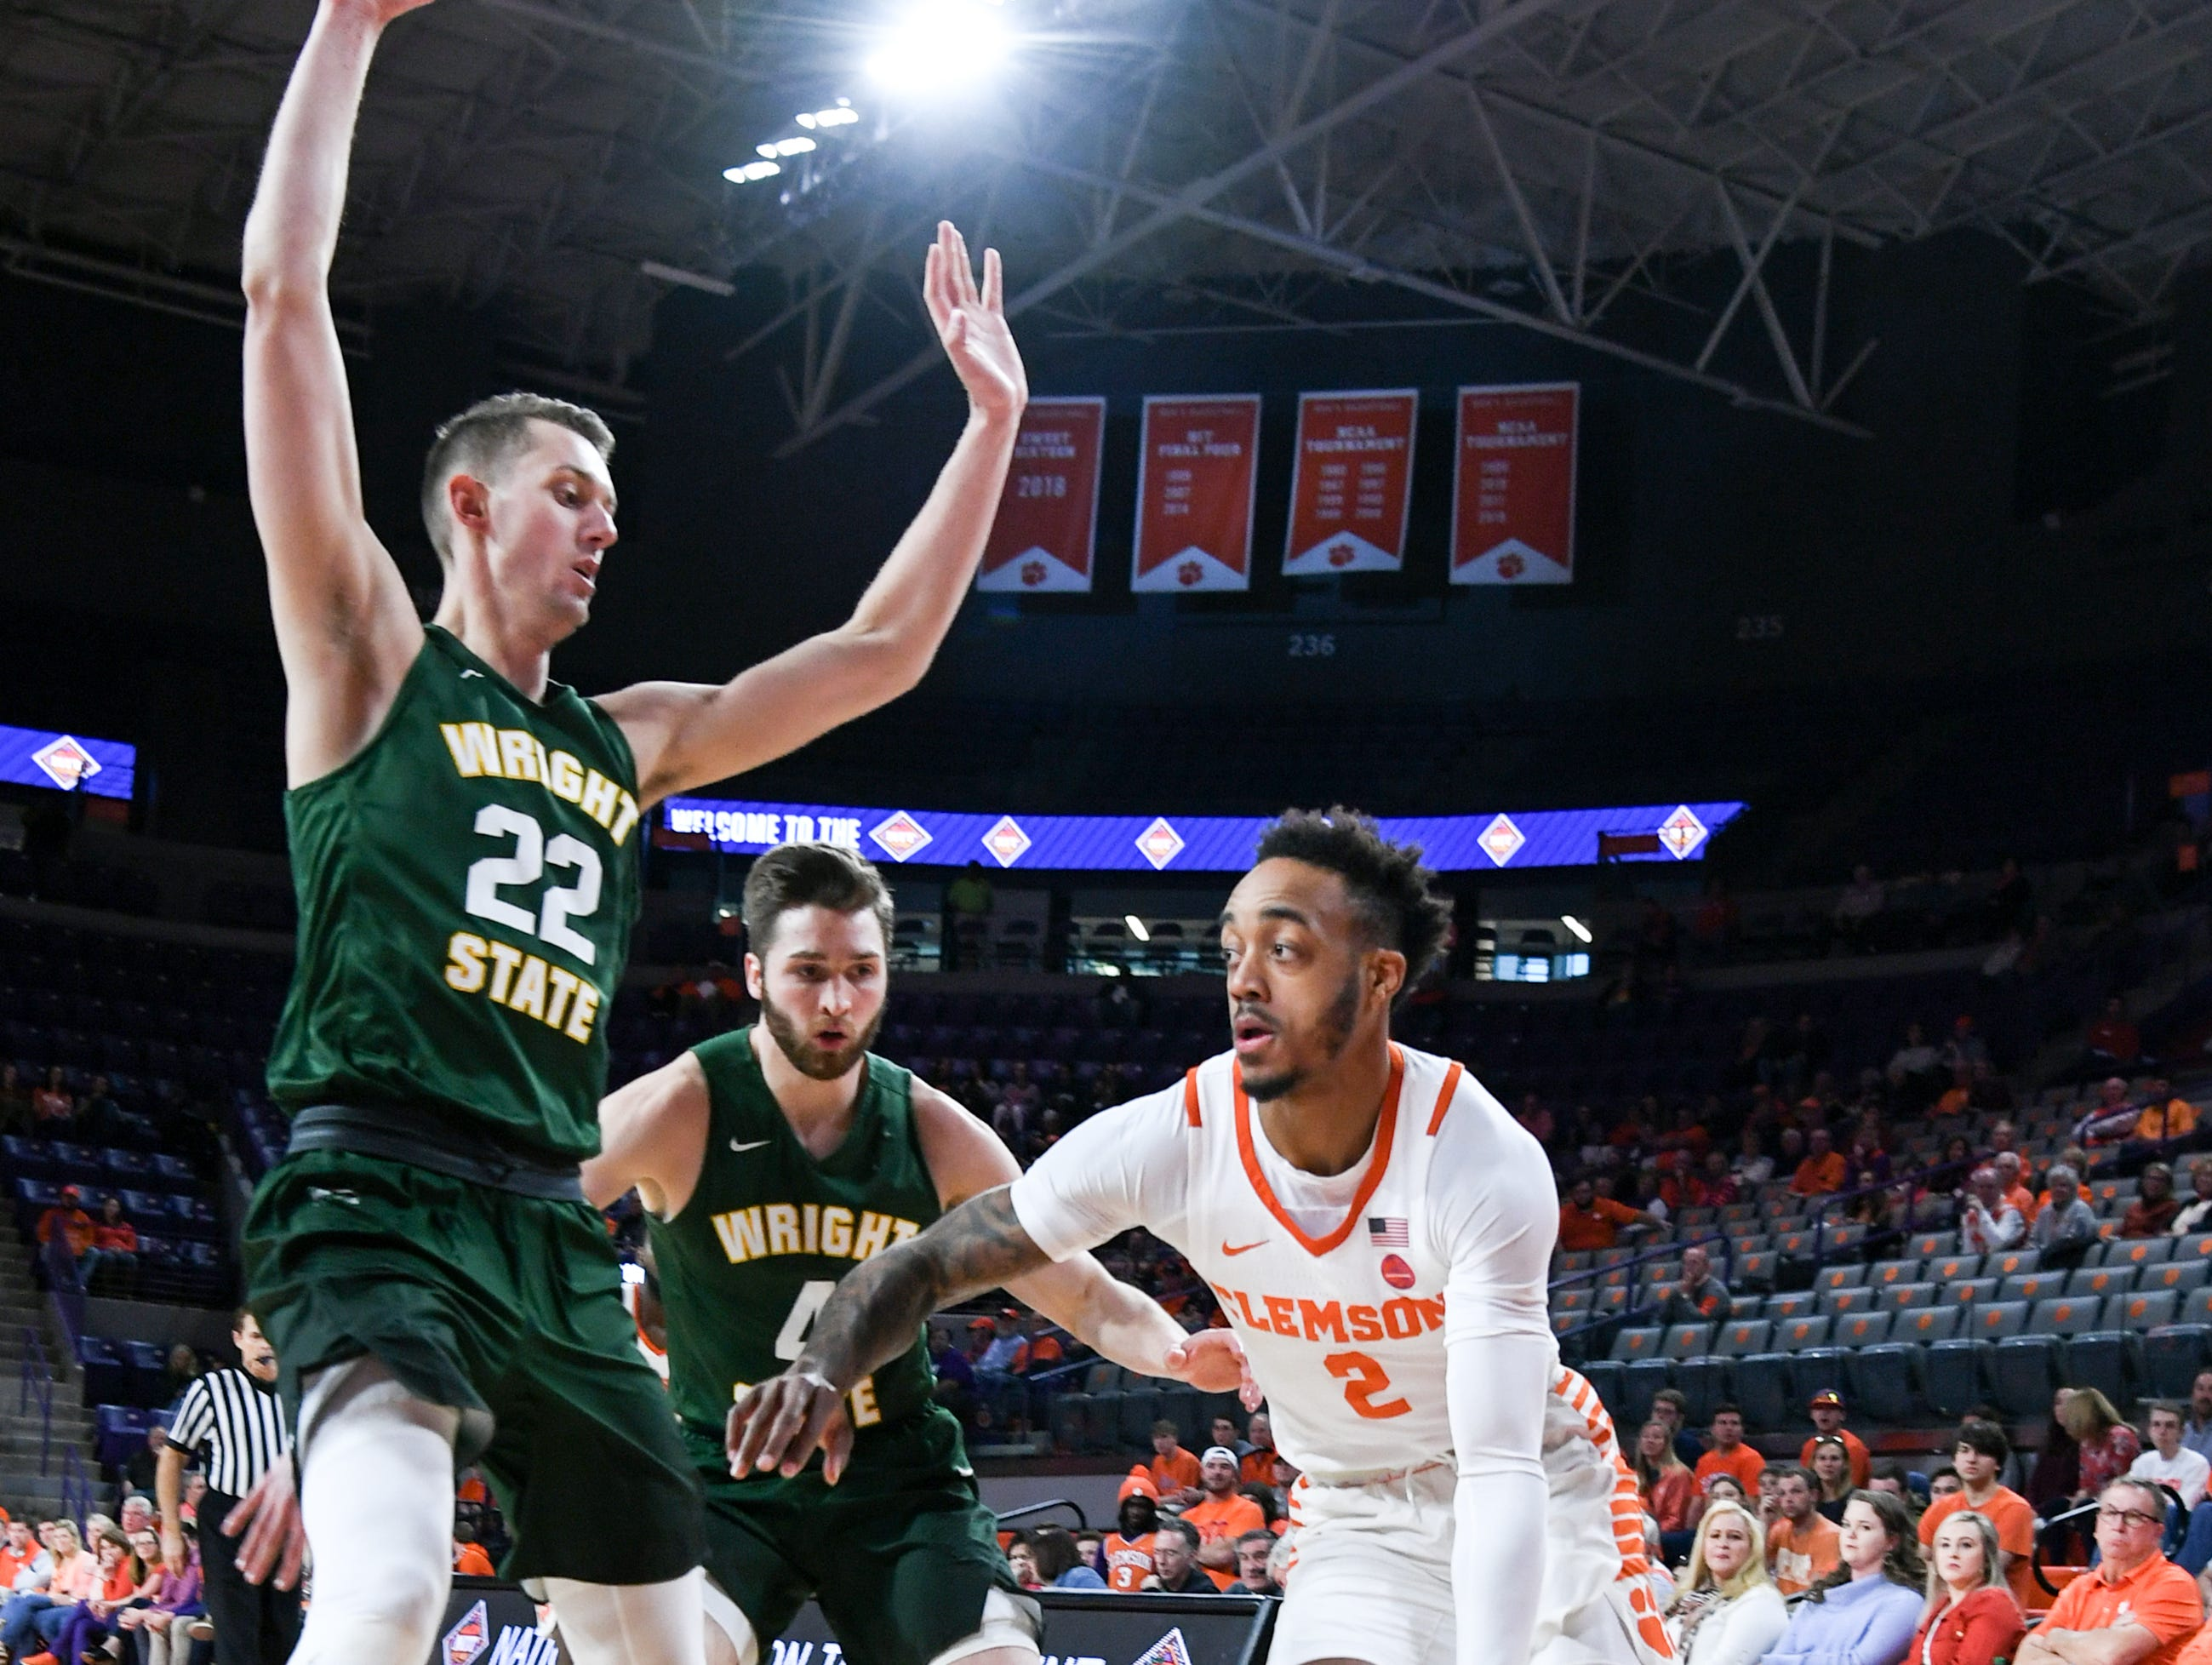 Clemson guard Marcquise Reed (2) dribbles near Wright State center Parker Ernsthausen(22) during the first half of the NIT at Littlejohn Coliseum in Clemson Tuesday, March 19, 2019.